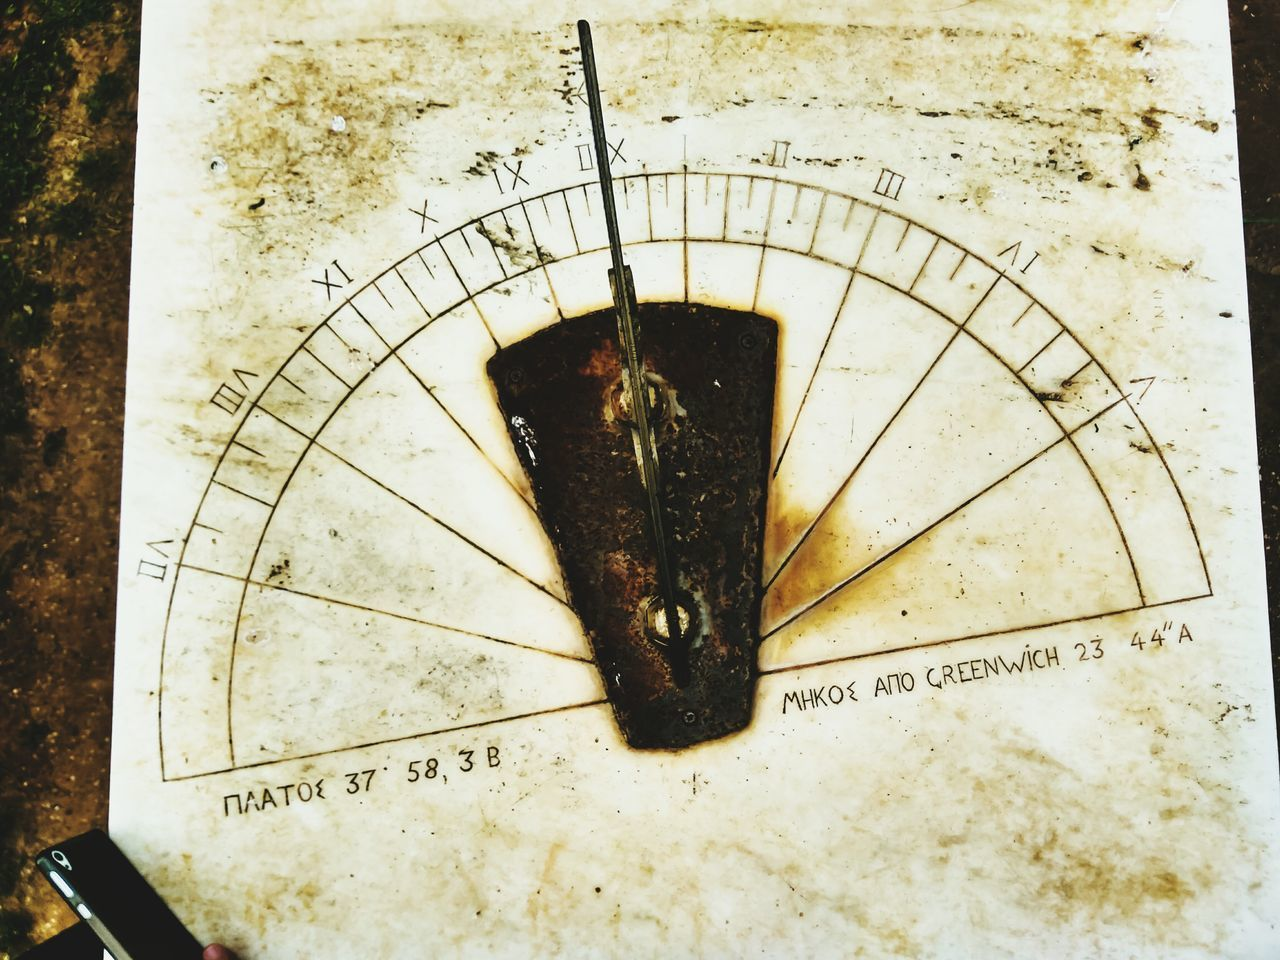 Old Clock Historical Clock No People Day Outdoors Close-up History Nature Pattern Texture Textured  Beauty In Nature EyeEm Nature Lover EyeEm Best Shots Nature_collection Architecture Smartphone Photography High Angle View Roman Numeral Marble Geometric Shape